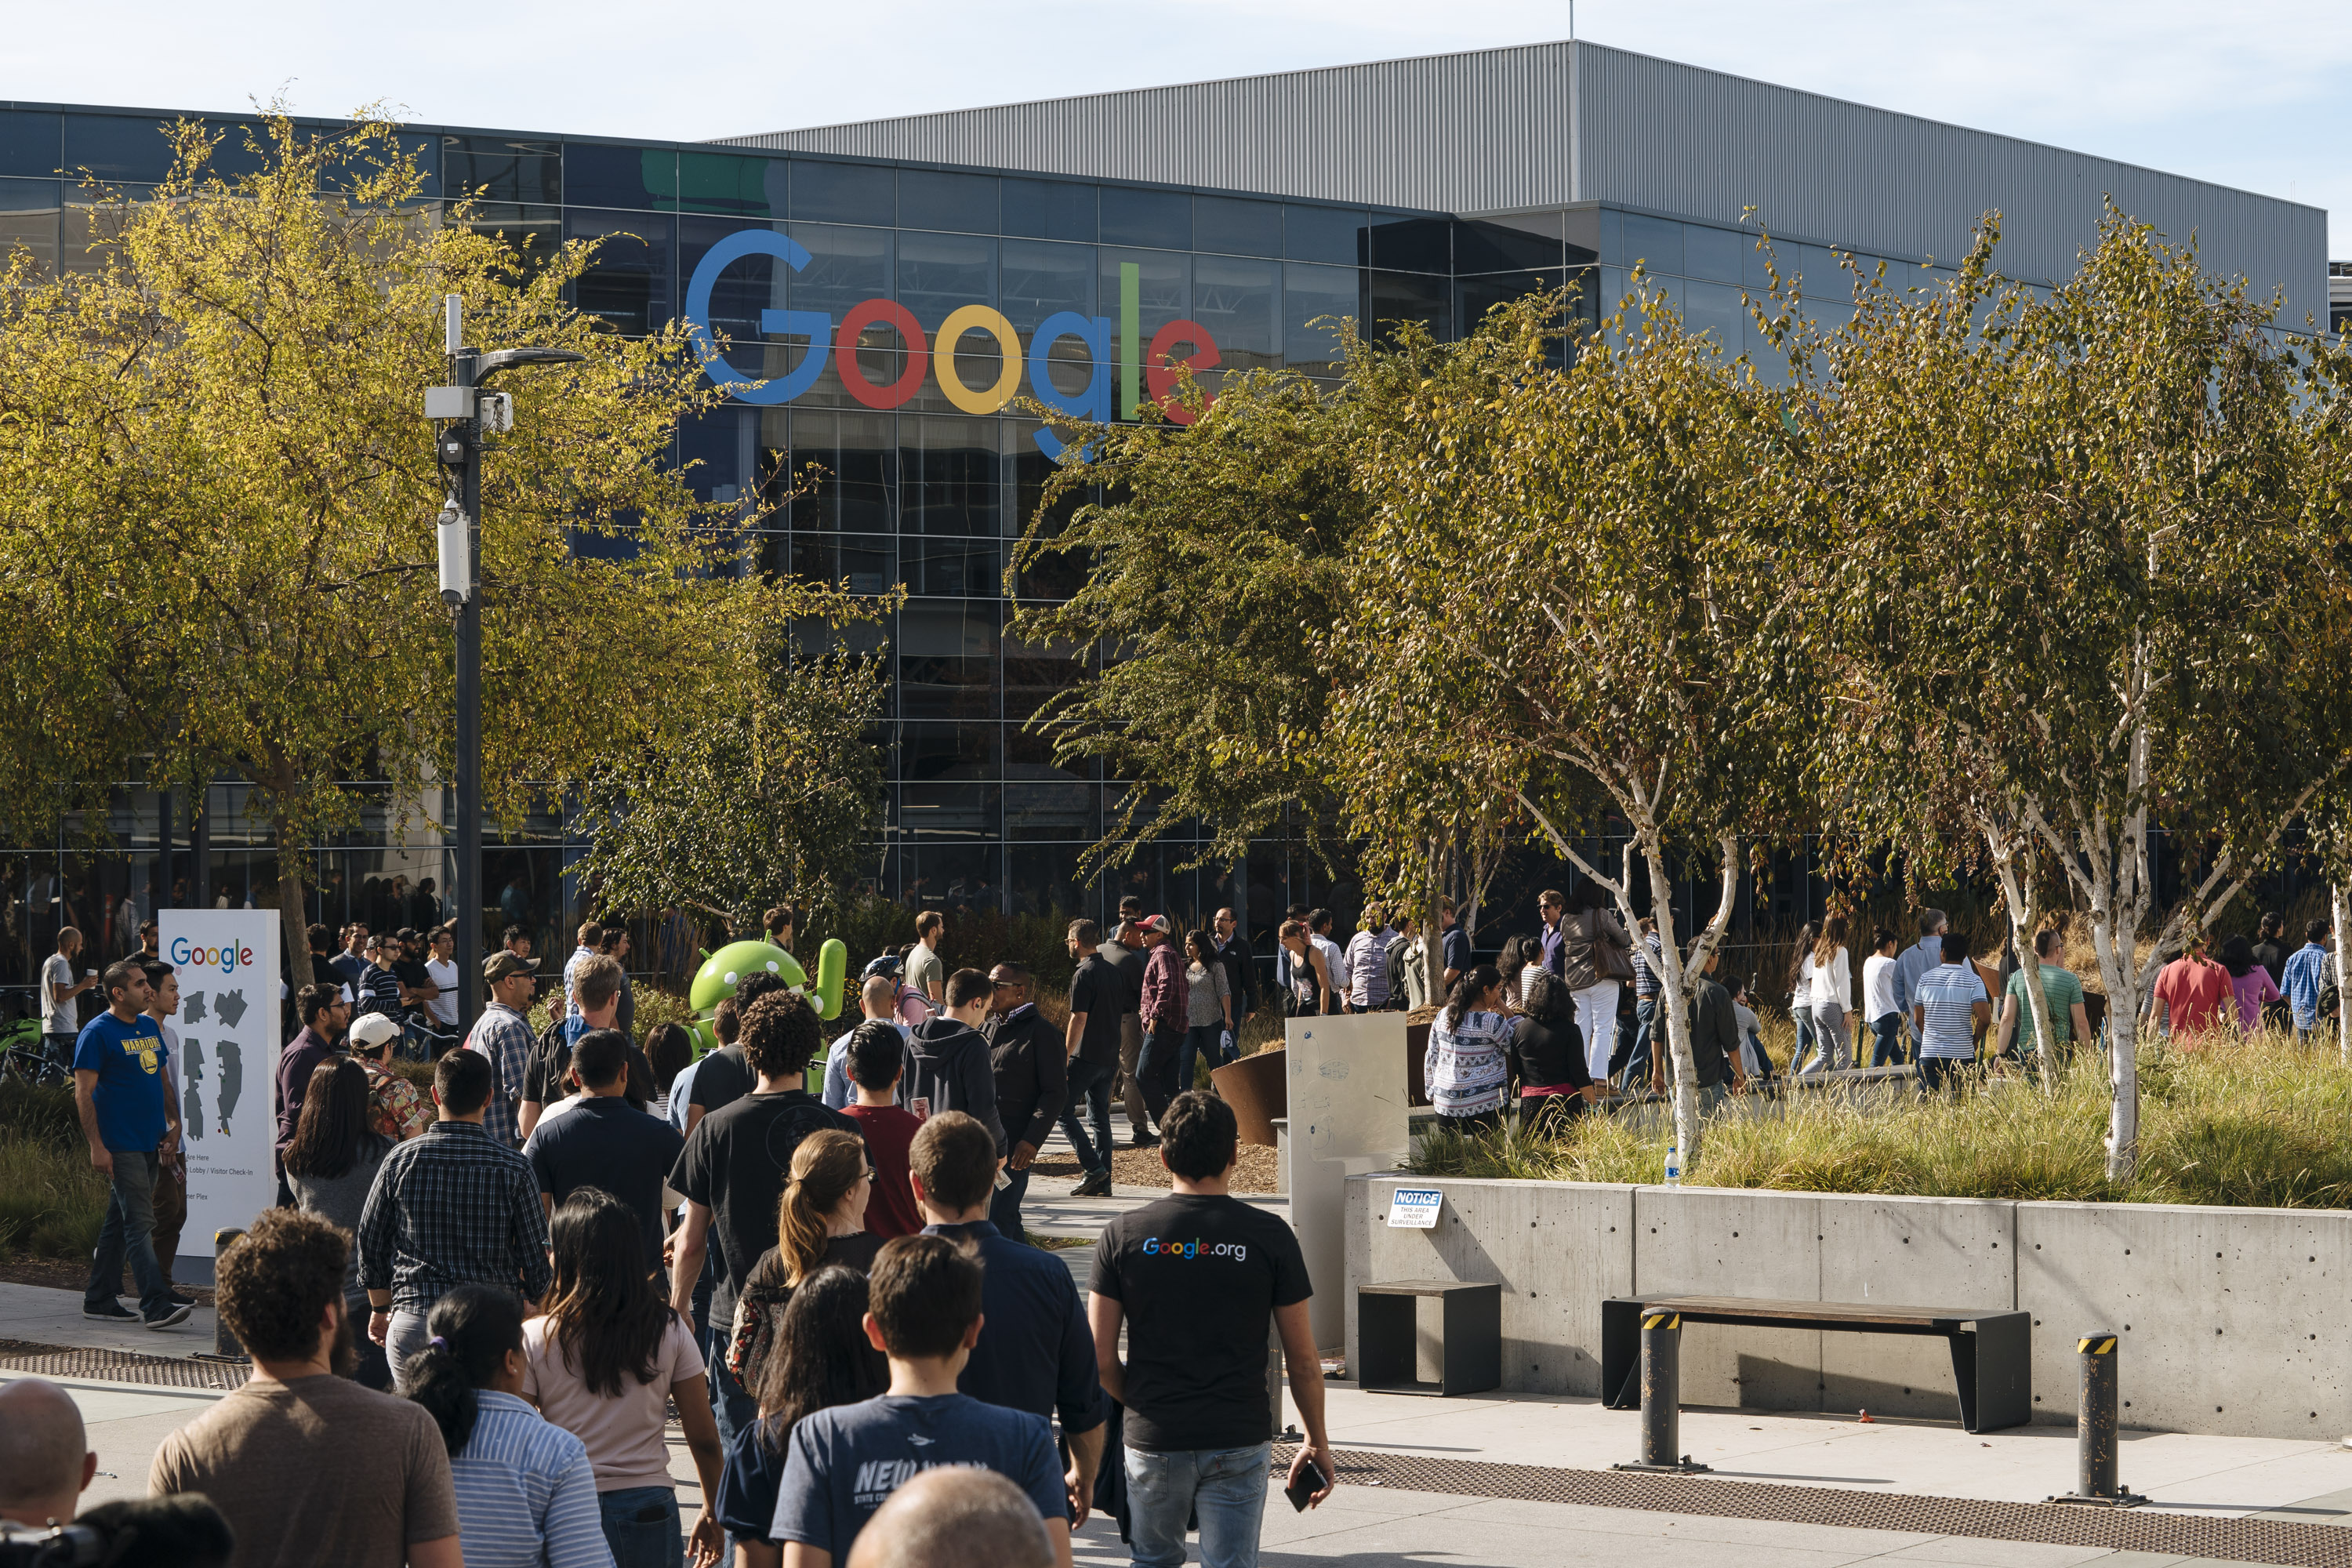 Google employees walking out of Google headquarters.